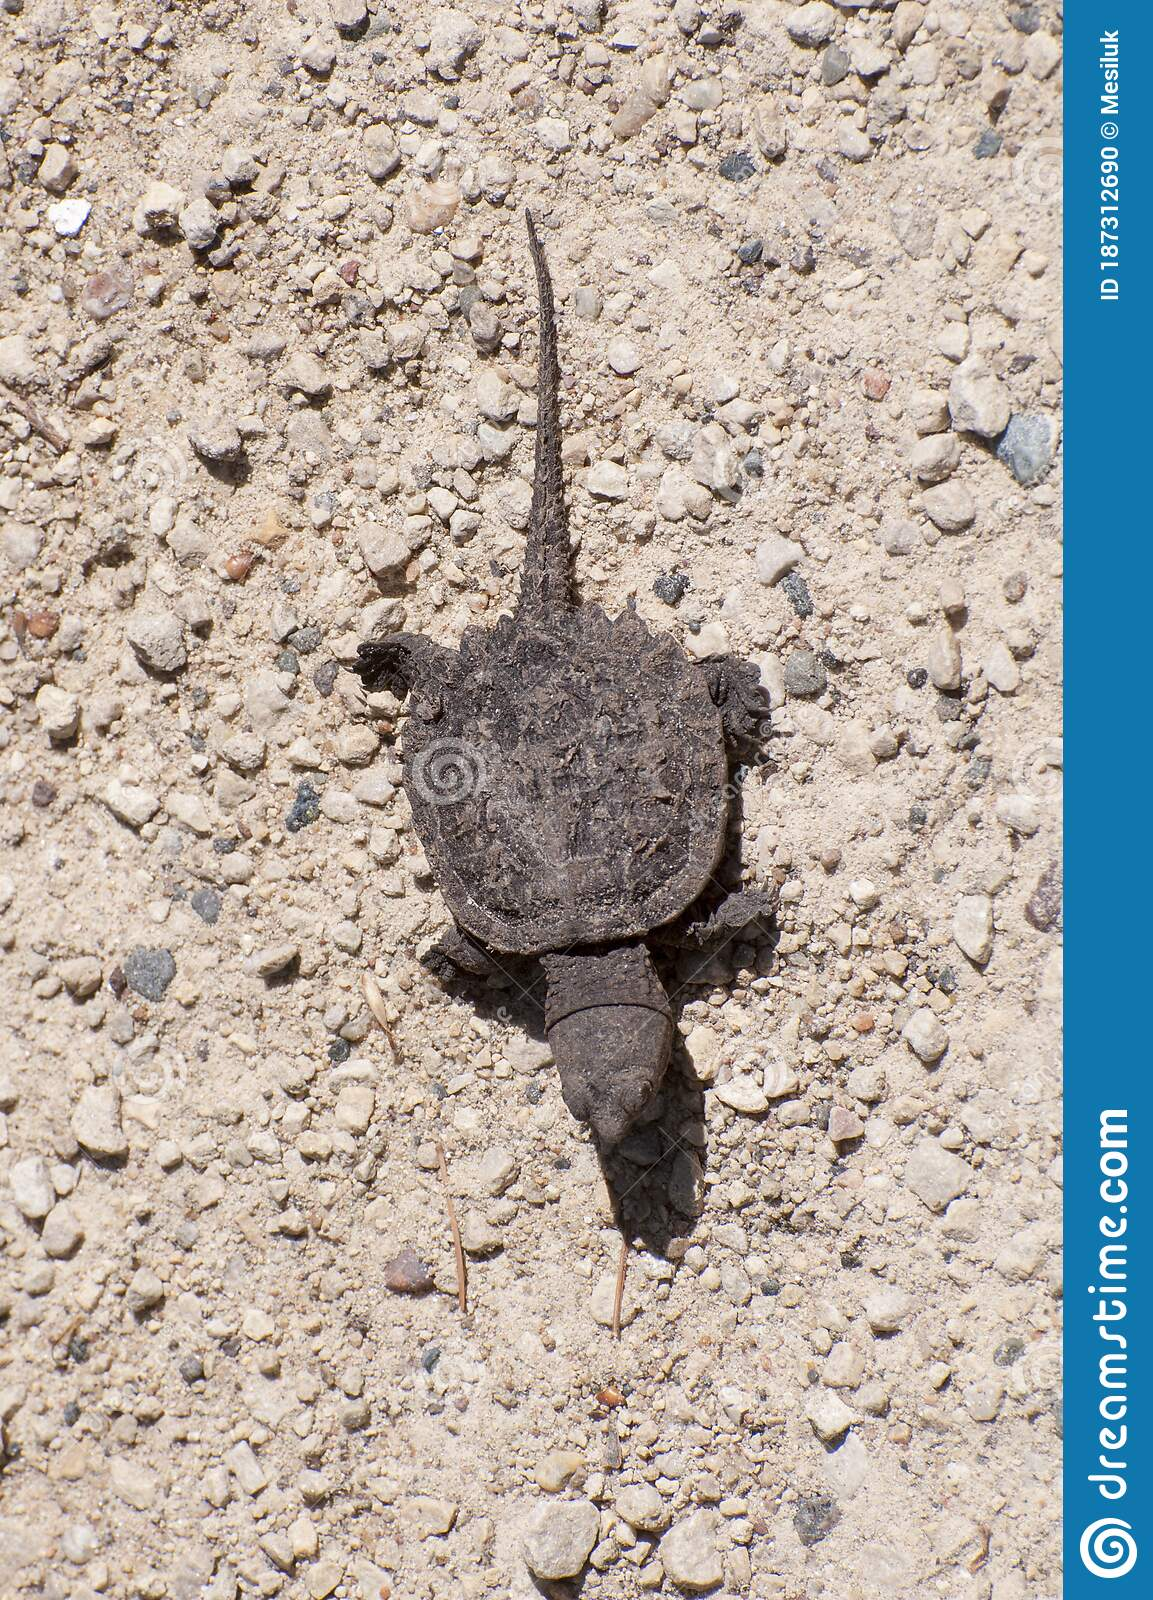 130 Baby Snapping Turtle Photos Free Royalty Free Stock Photos From Dreamstime